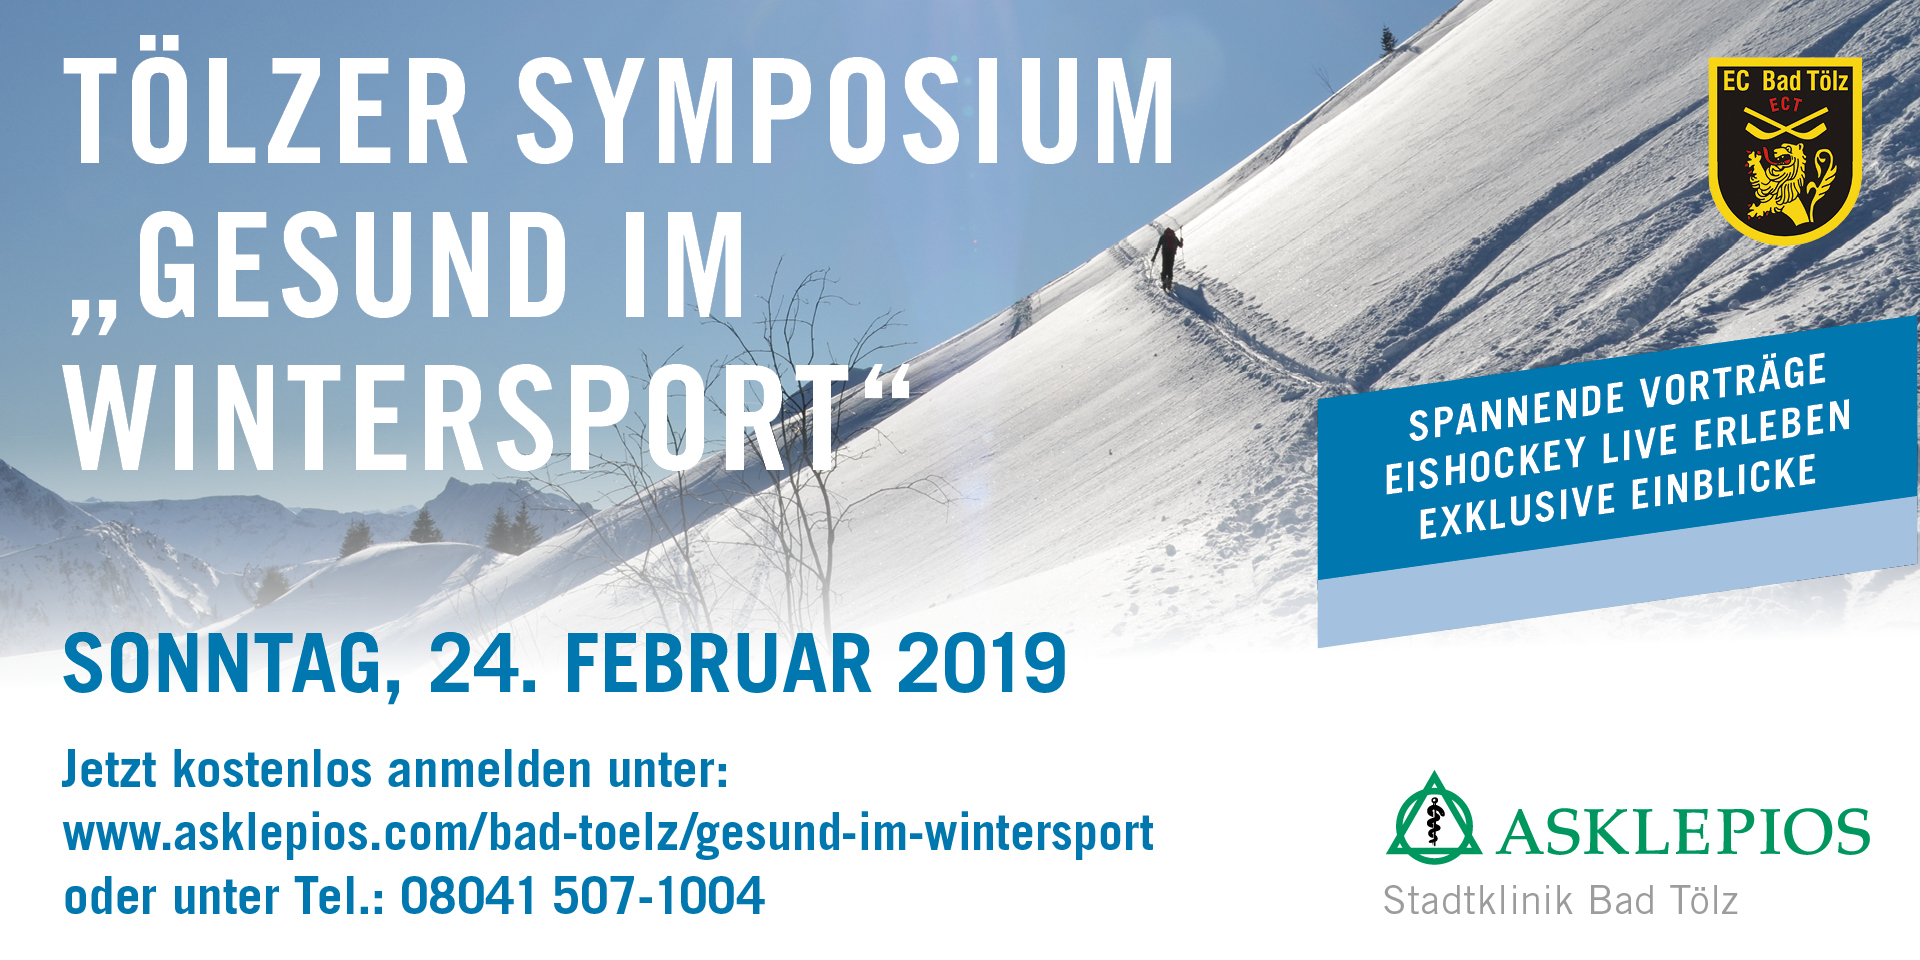 header-symposium-gesund-wintersport